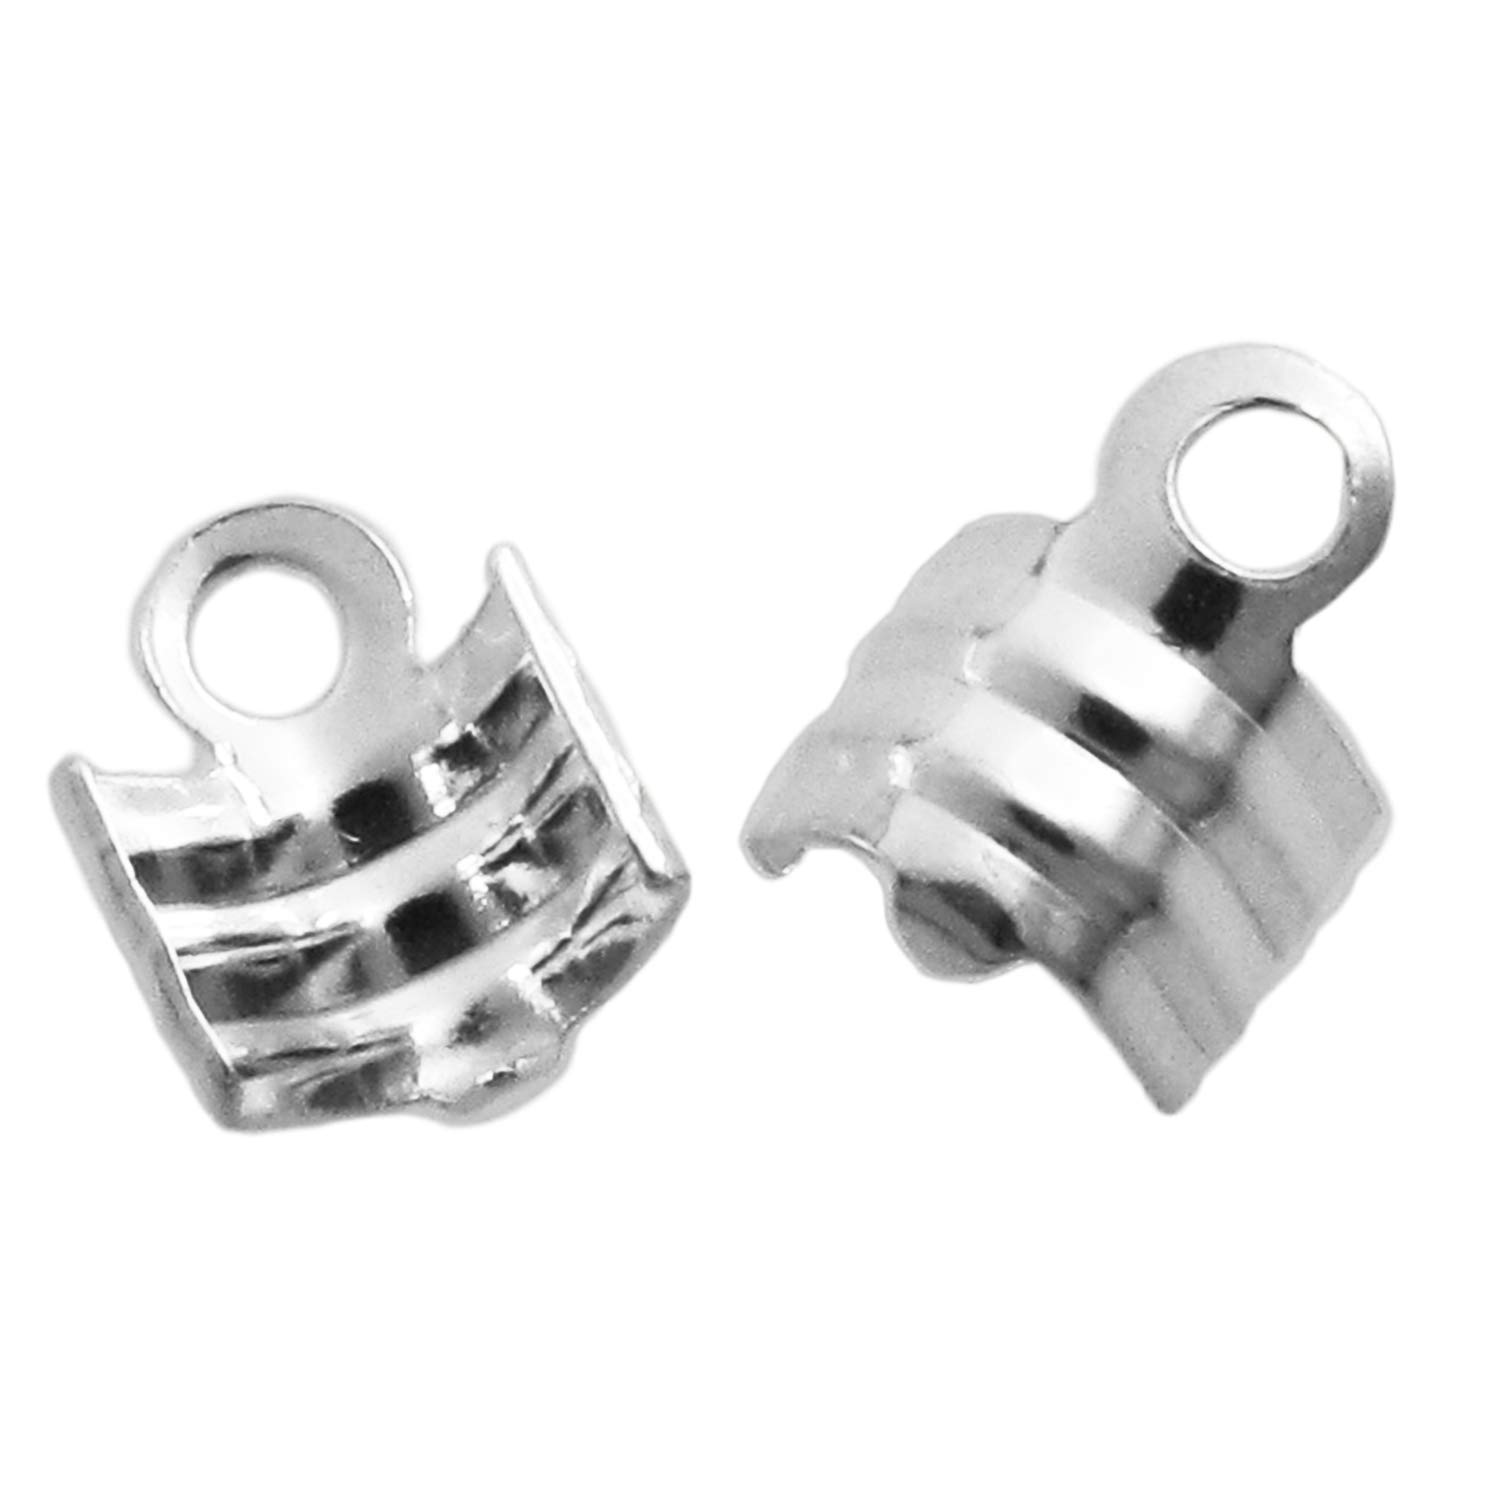 8pcs .925 Sterling Silver 3mm Leather Cord String Clip Cord End Crimp Cap/Findings/Bright